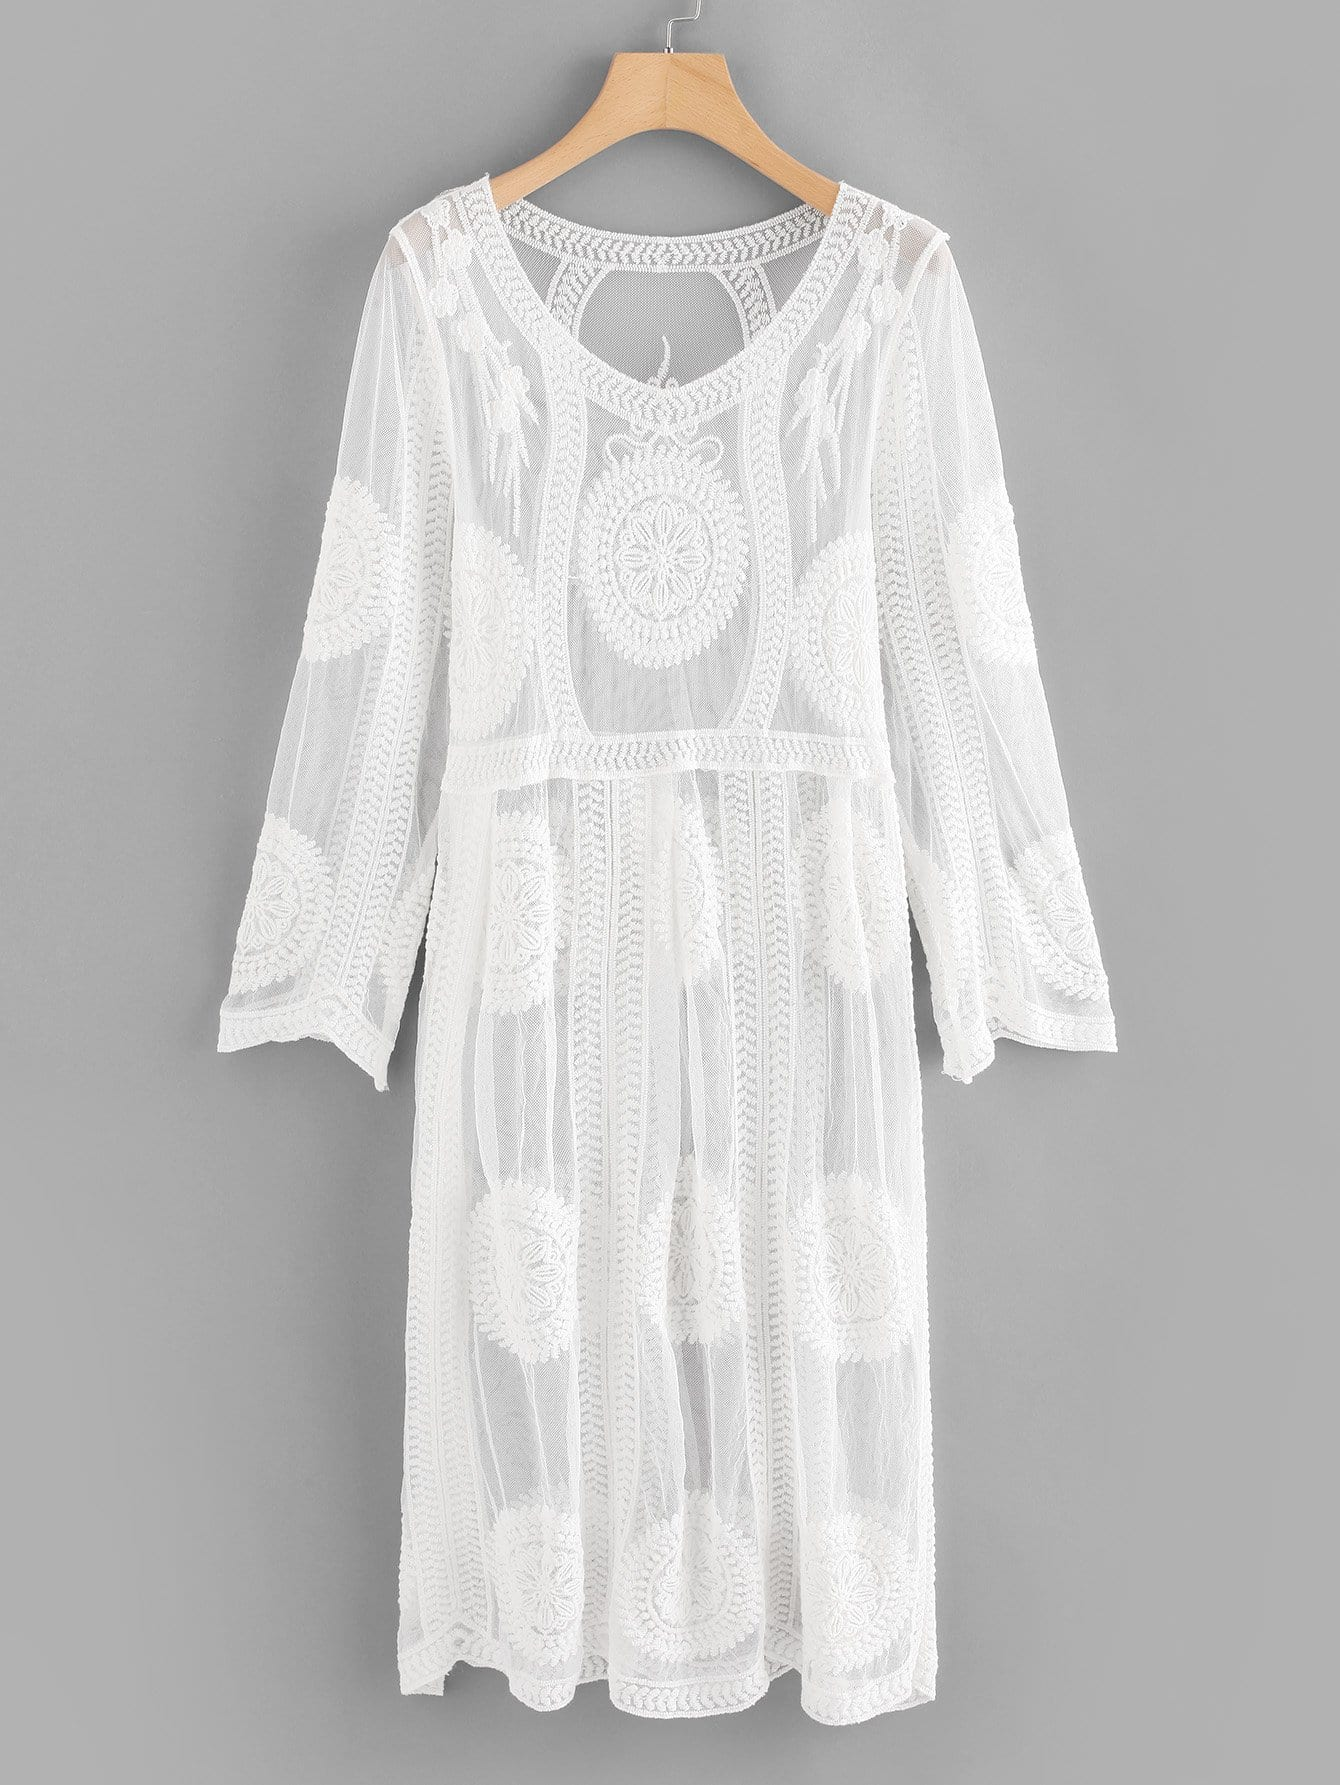 Lace V Neckline Sheer Cover Up sleeveless scalloped sheer lace tunic cover up top